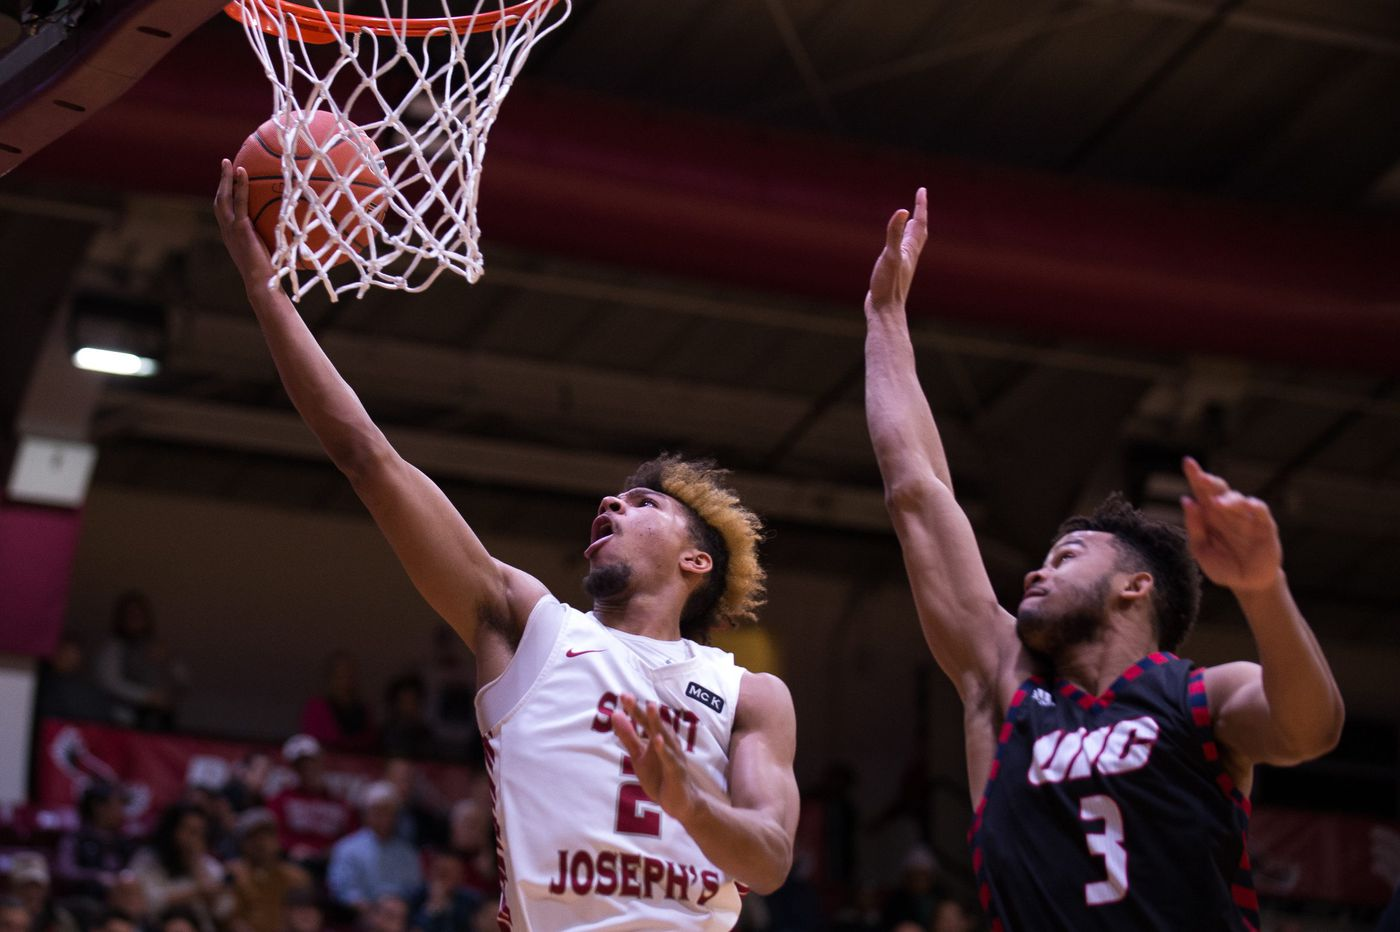 Fresh Kimble scores a career-high 31 to lead St. Joseph's past UIC